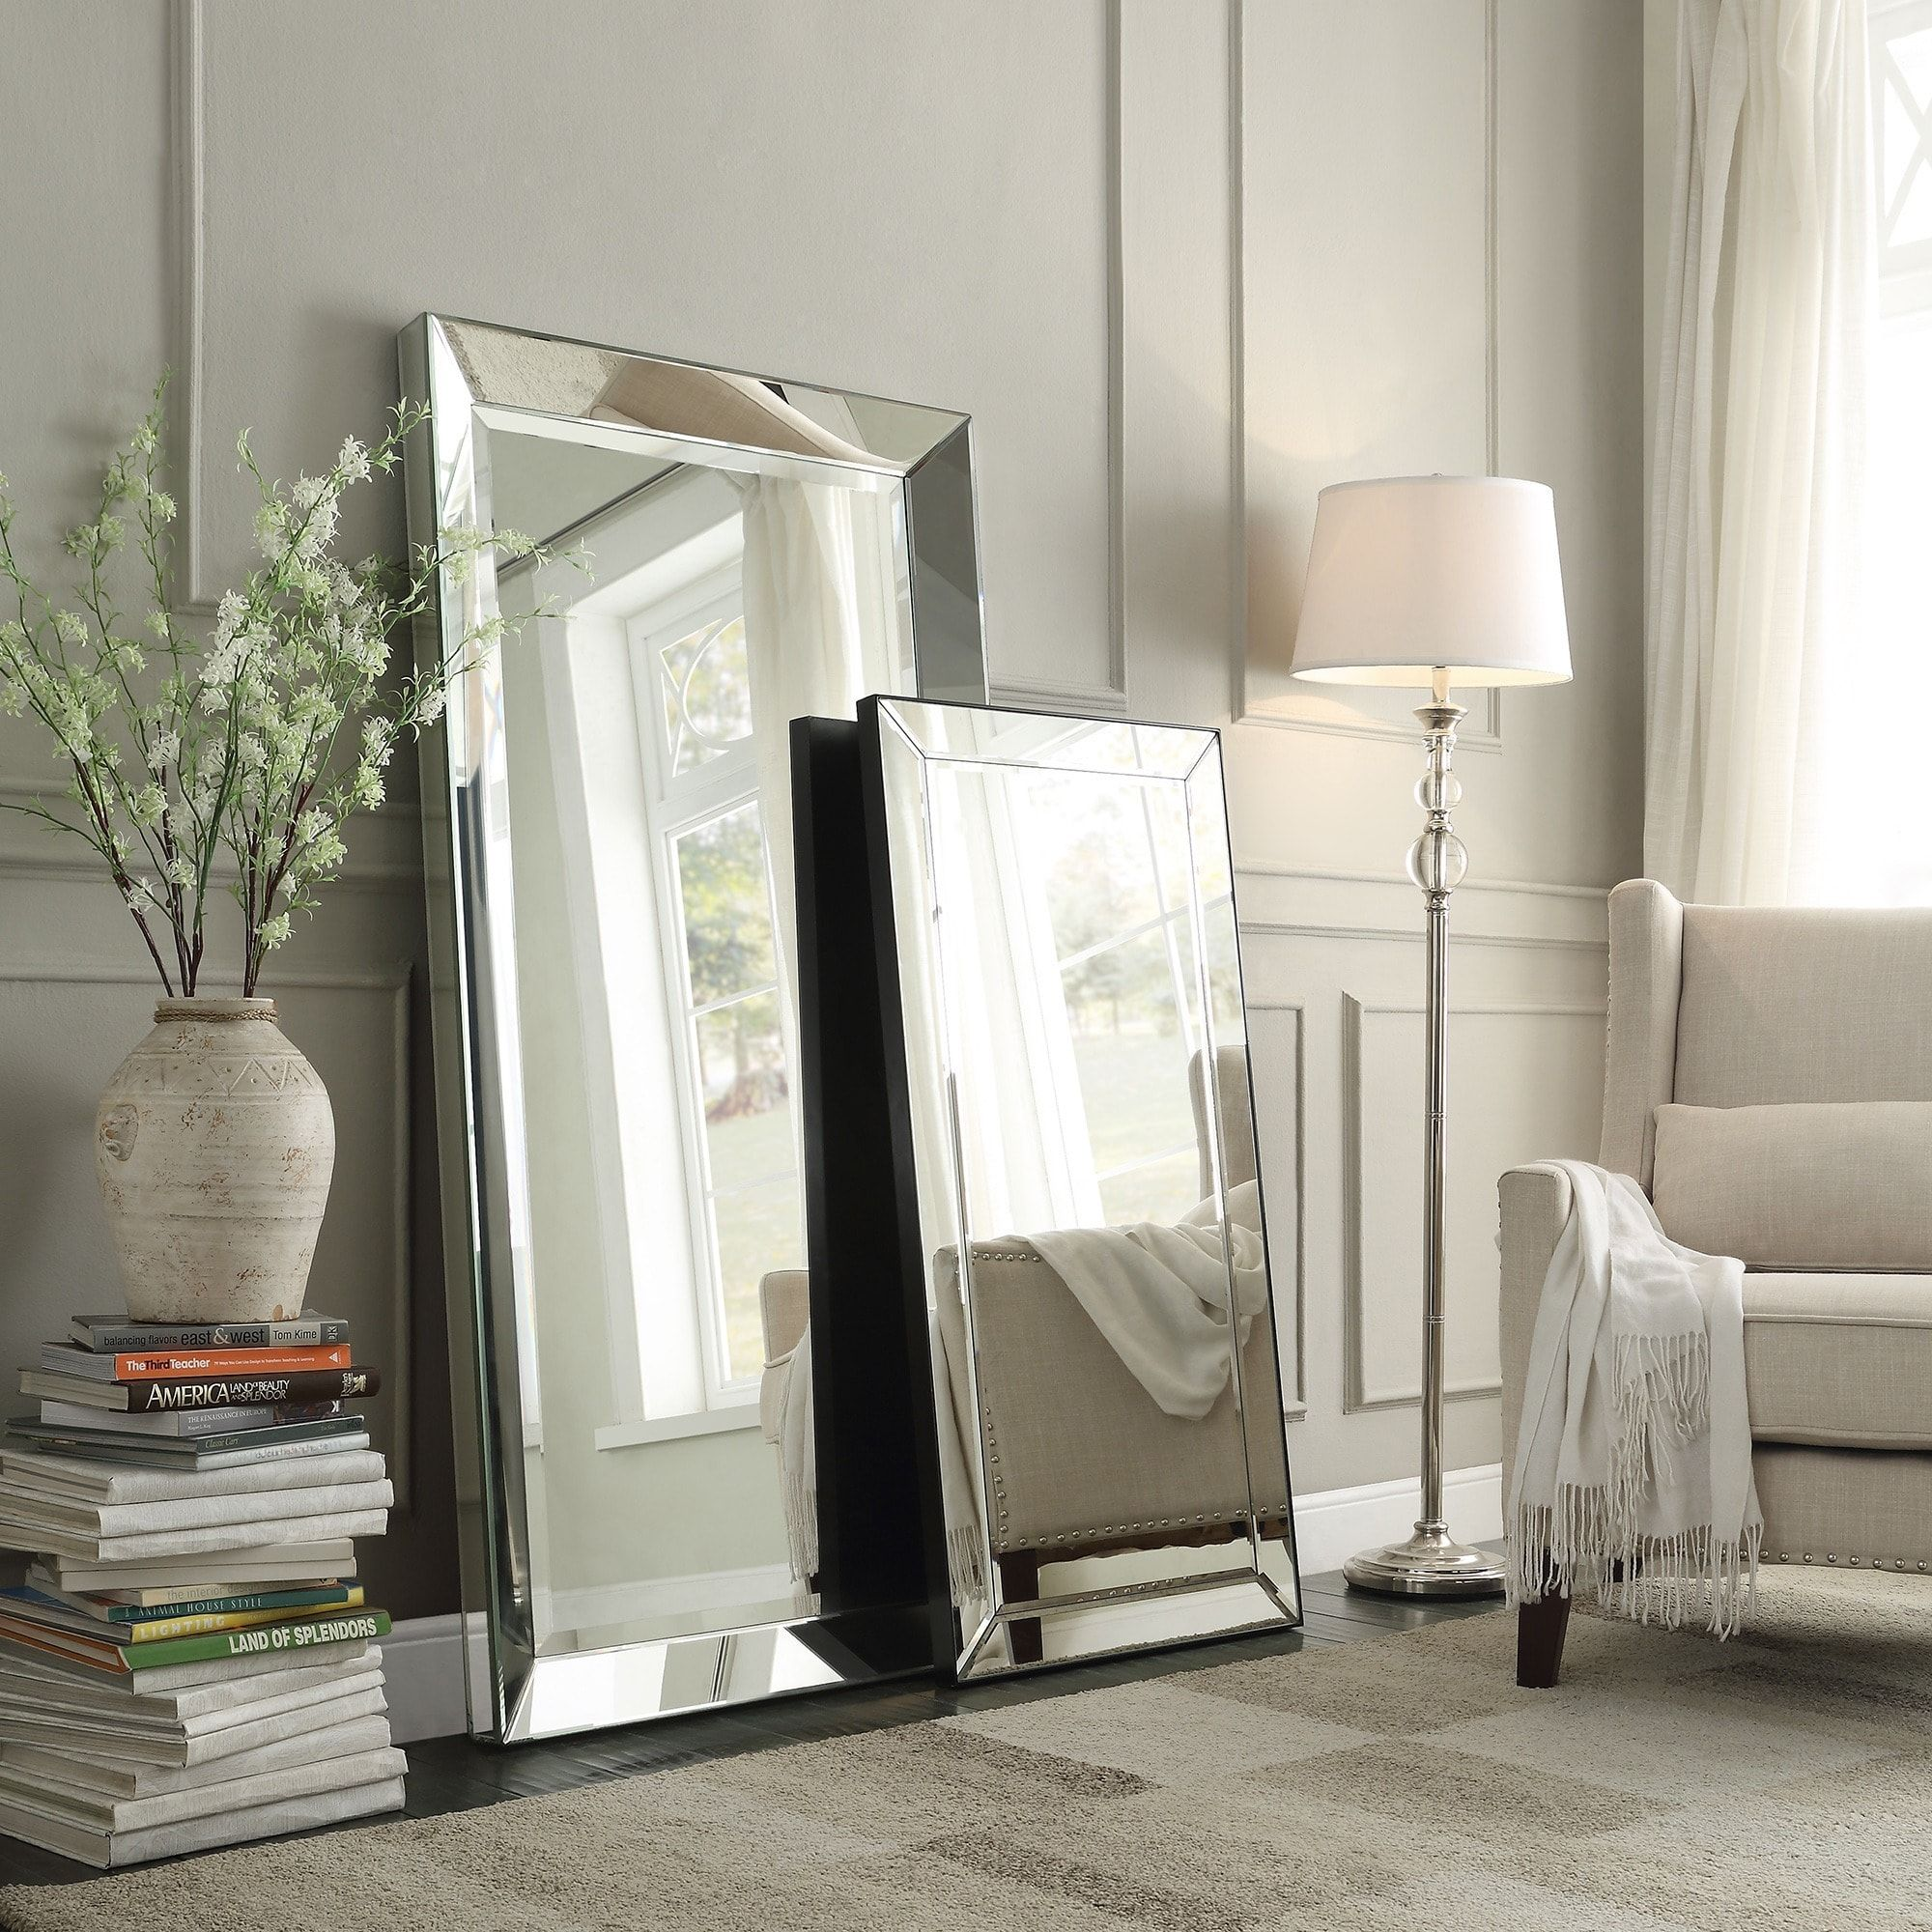 Conrad Bevel Mirrored Frame Rectangular Accent Wall Mirror by ...